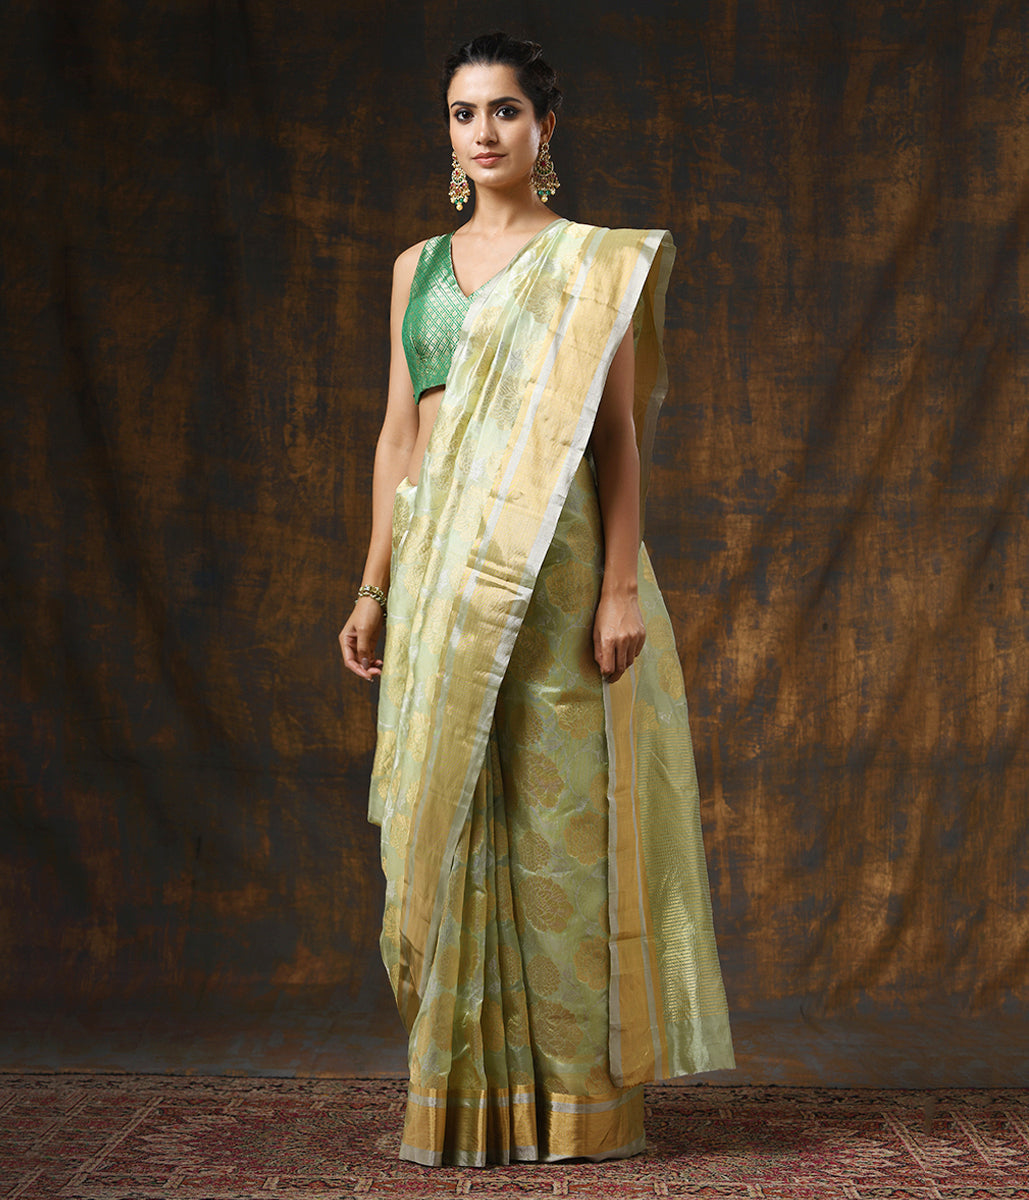 Handwoven Light Green Chanderi Silk saree with Gold and Silver Zari jaal